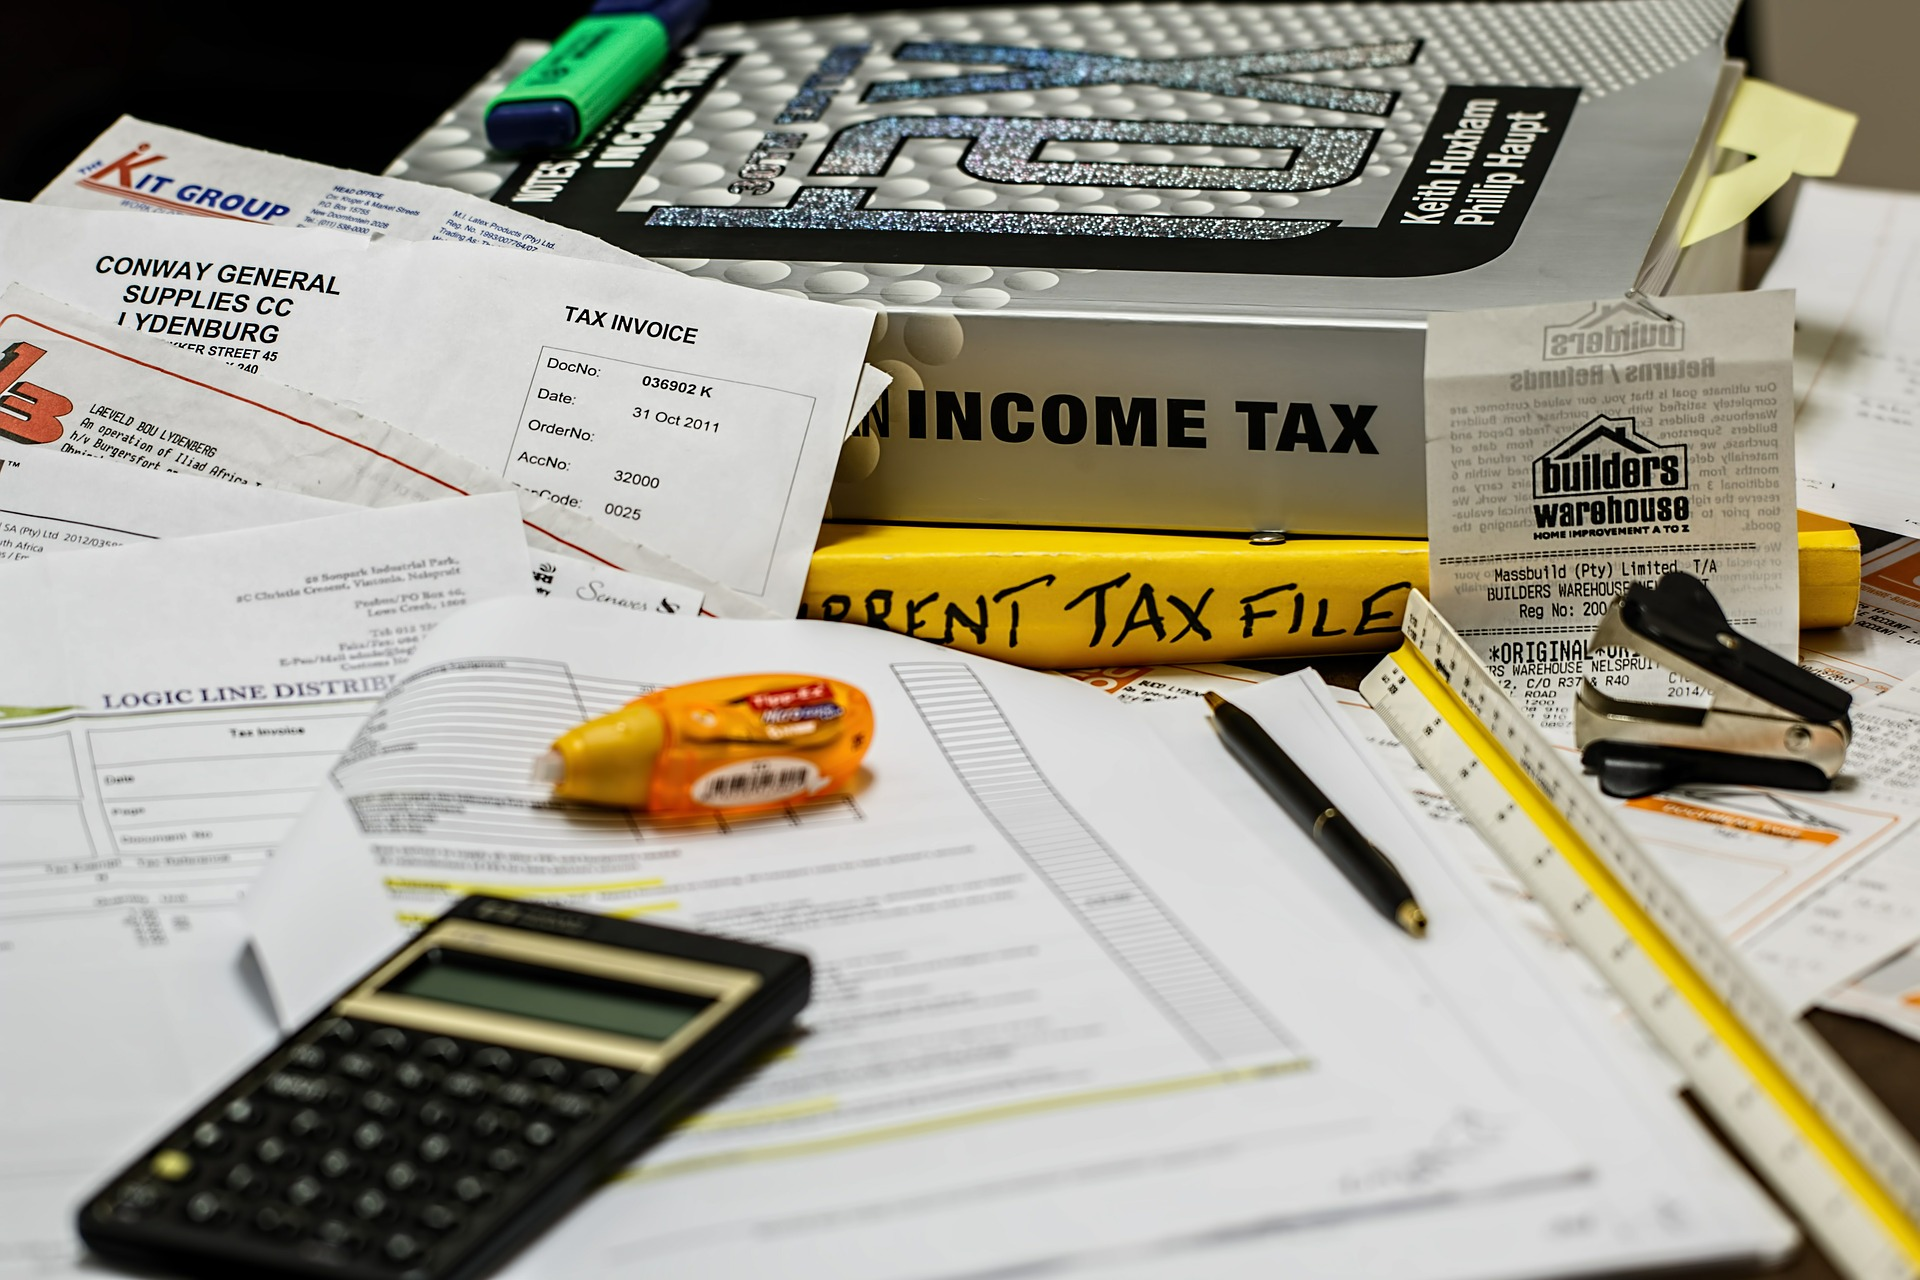 What are the Section 80C Income Tax Deductions and Exemptions for AY 2020-21?